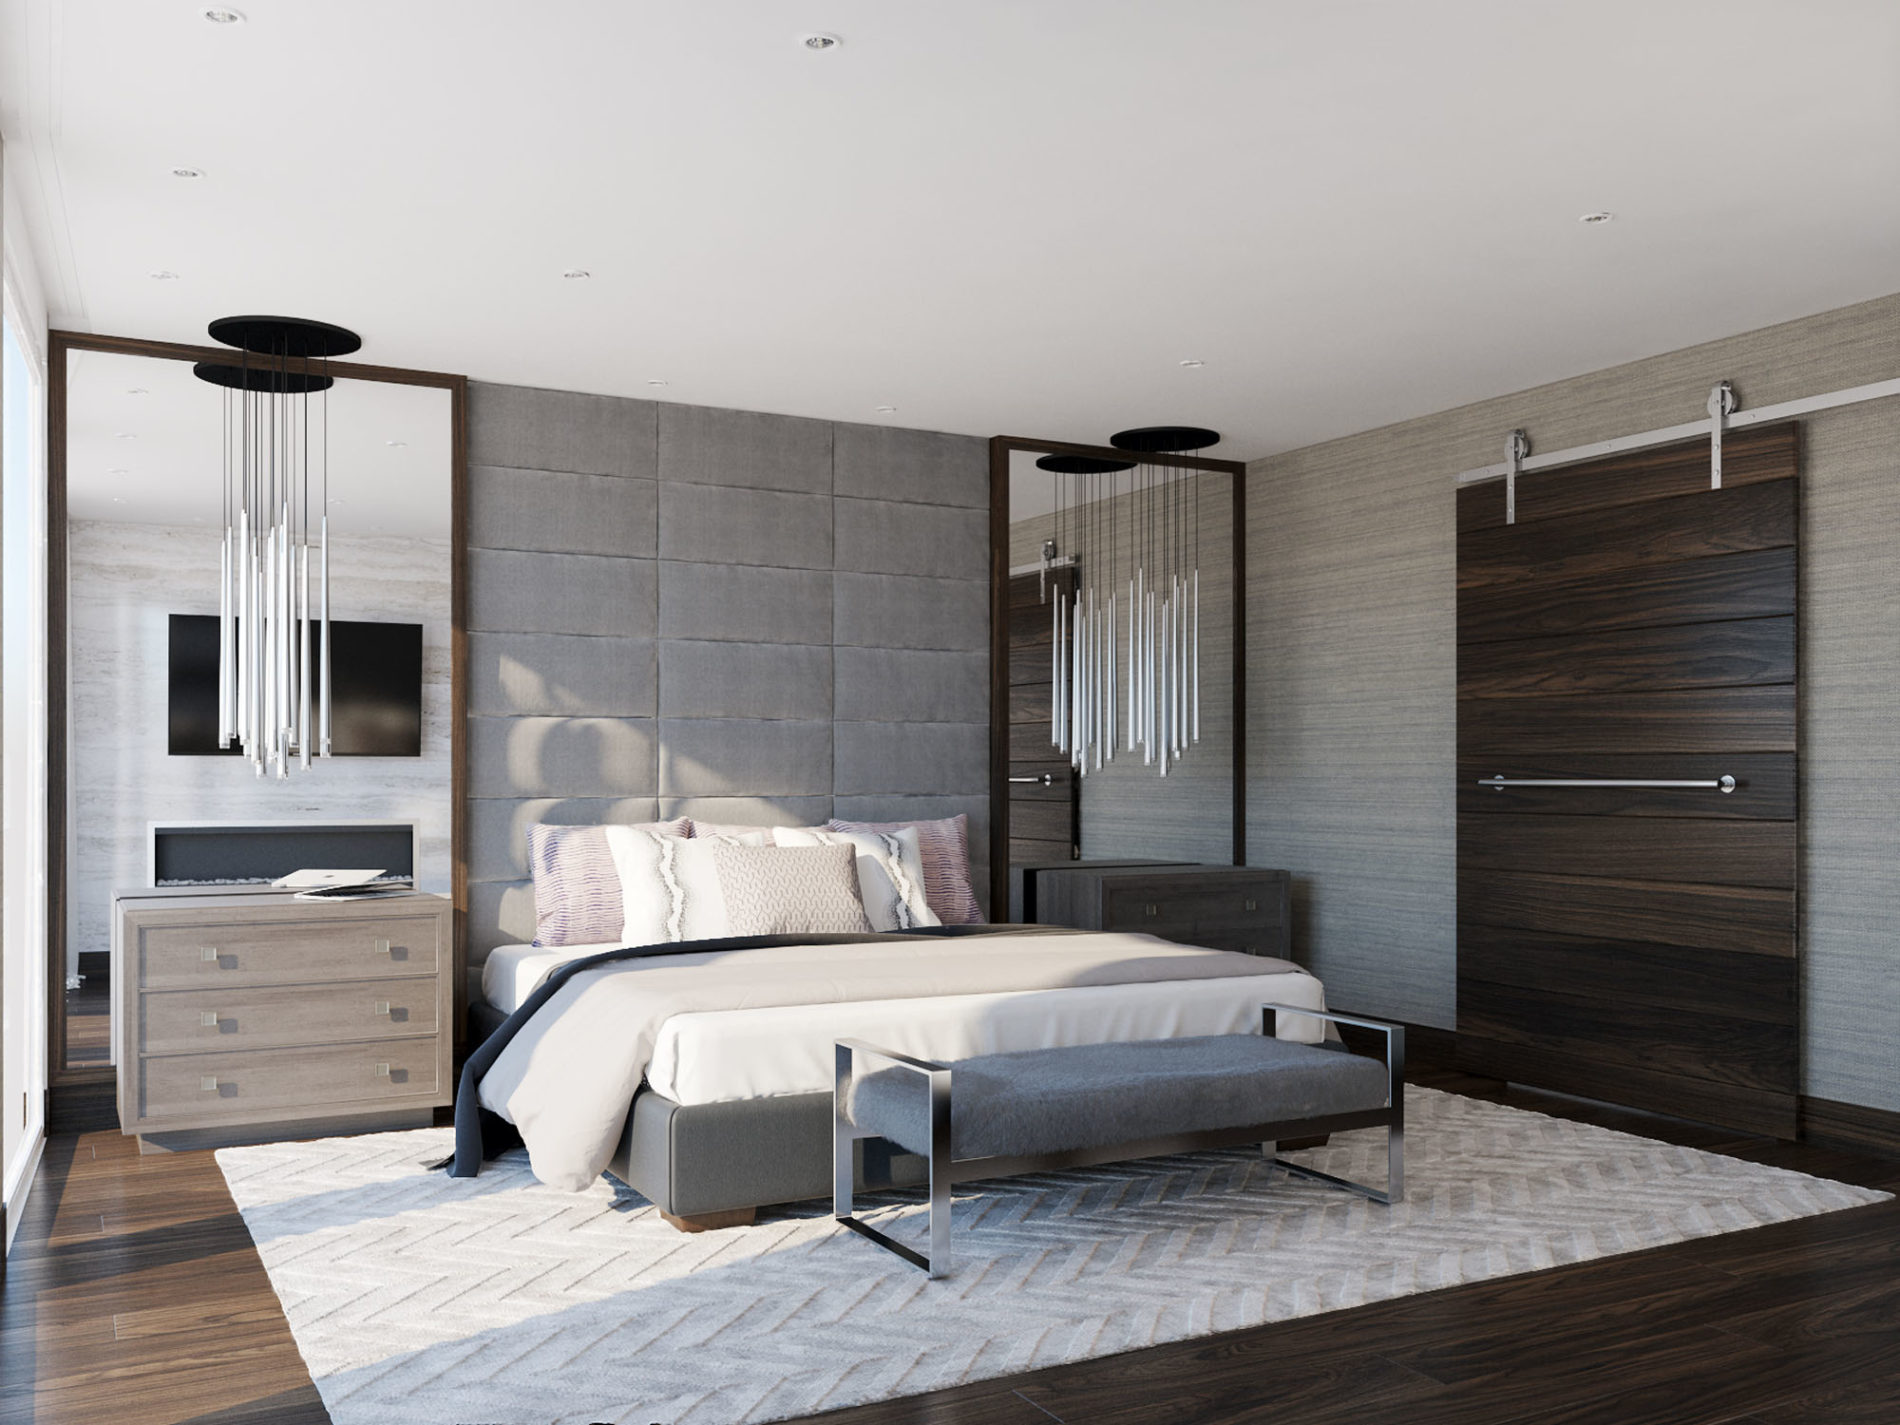 In this bedroom rendering we focused on using warm tones and natural elements to create a relaxed atmosphere. We created a custom floor to ceiling channel headboard as the focal point with built in framed oversized mirrors and ceiling mounted polished chrome pendant lights.  The selections include: Silver travertine slab, Panget white oak flooring, Restoration Hardware pendants and Bernhardt Furniture nightstands.